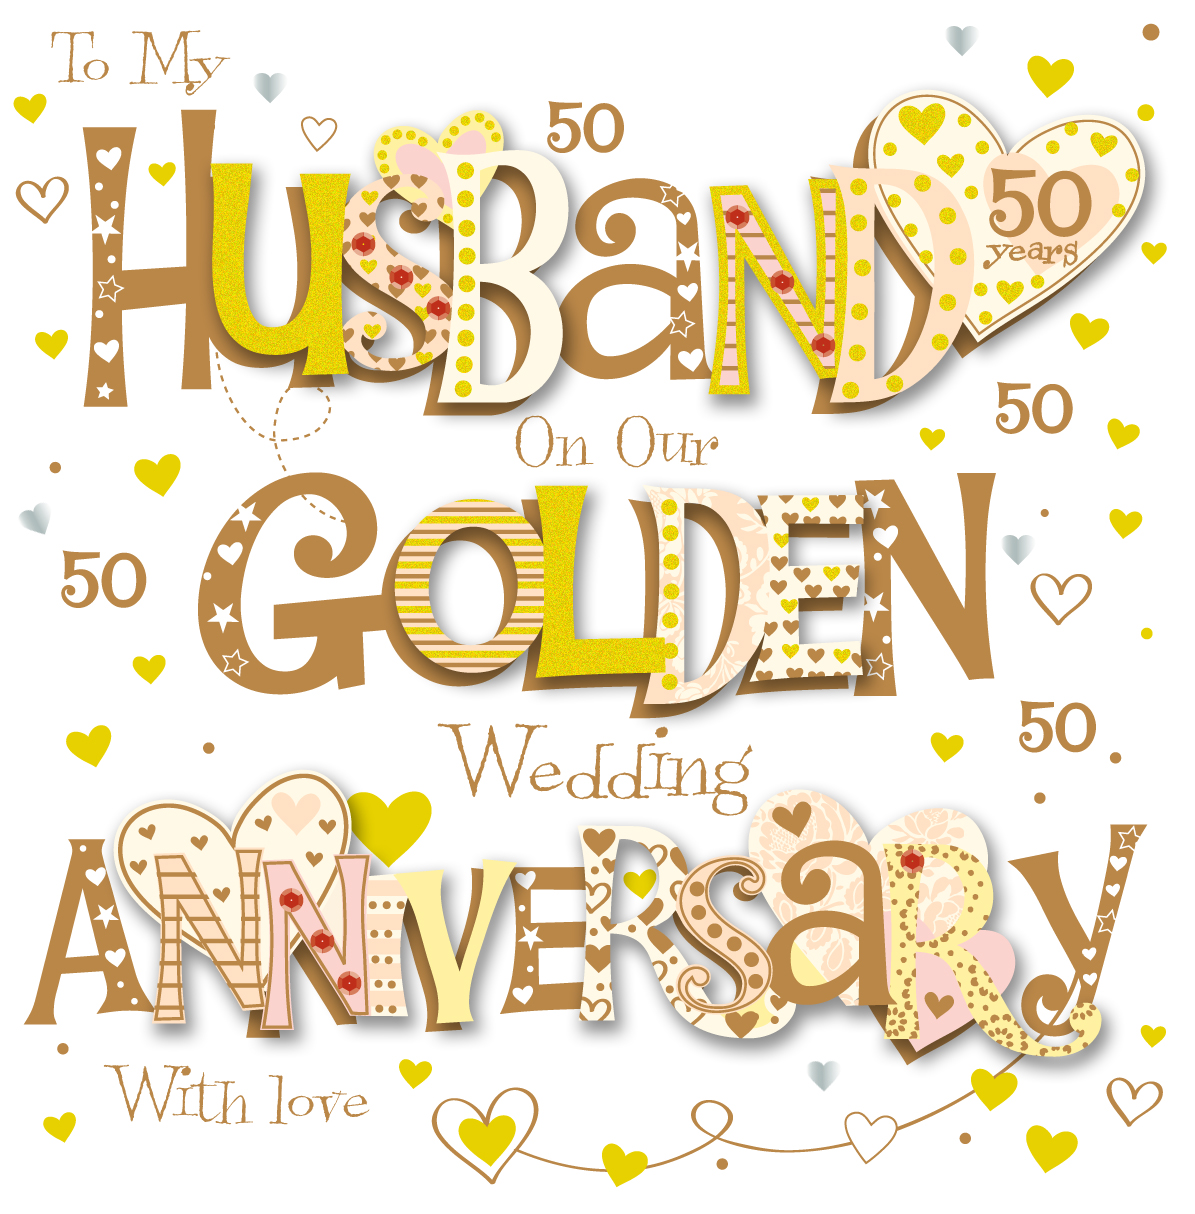 Husband golden 50th wedding anniversary greeting card cards love husband golden 50th wedding anniversary greeting card m4hsunfo